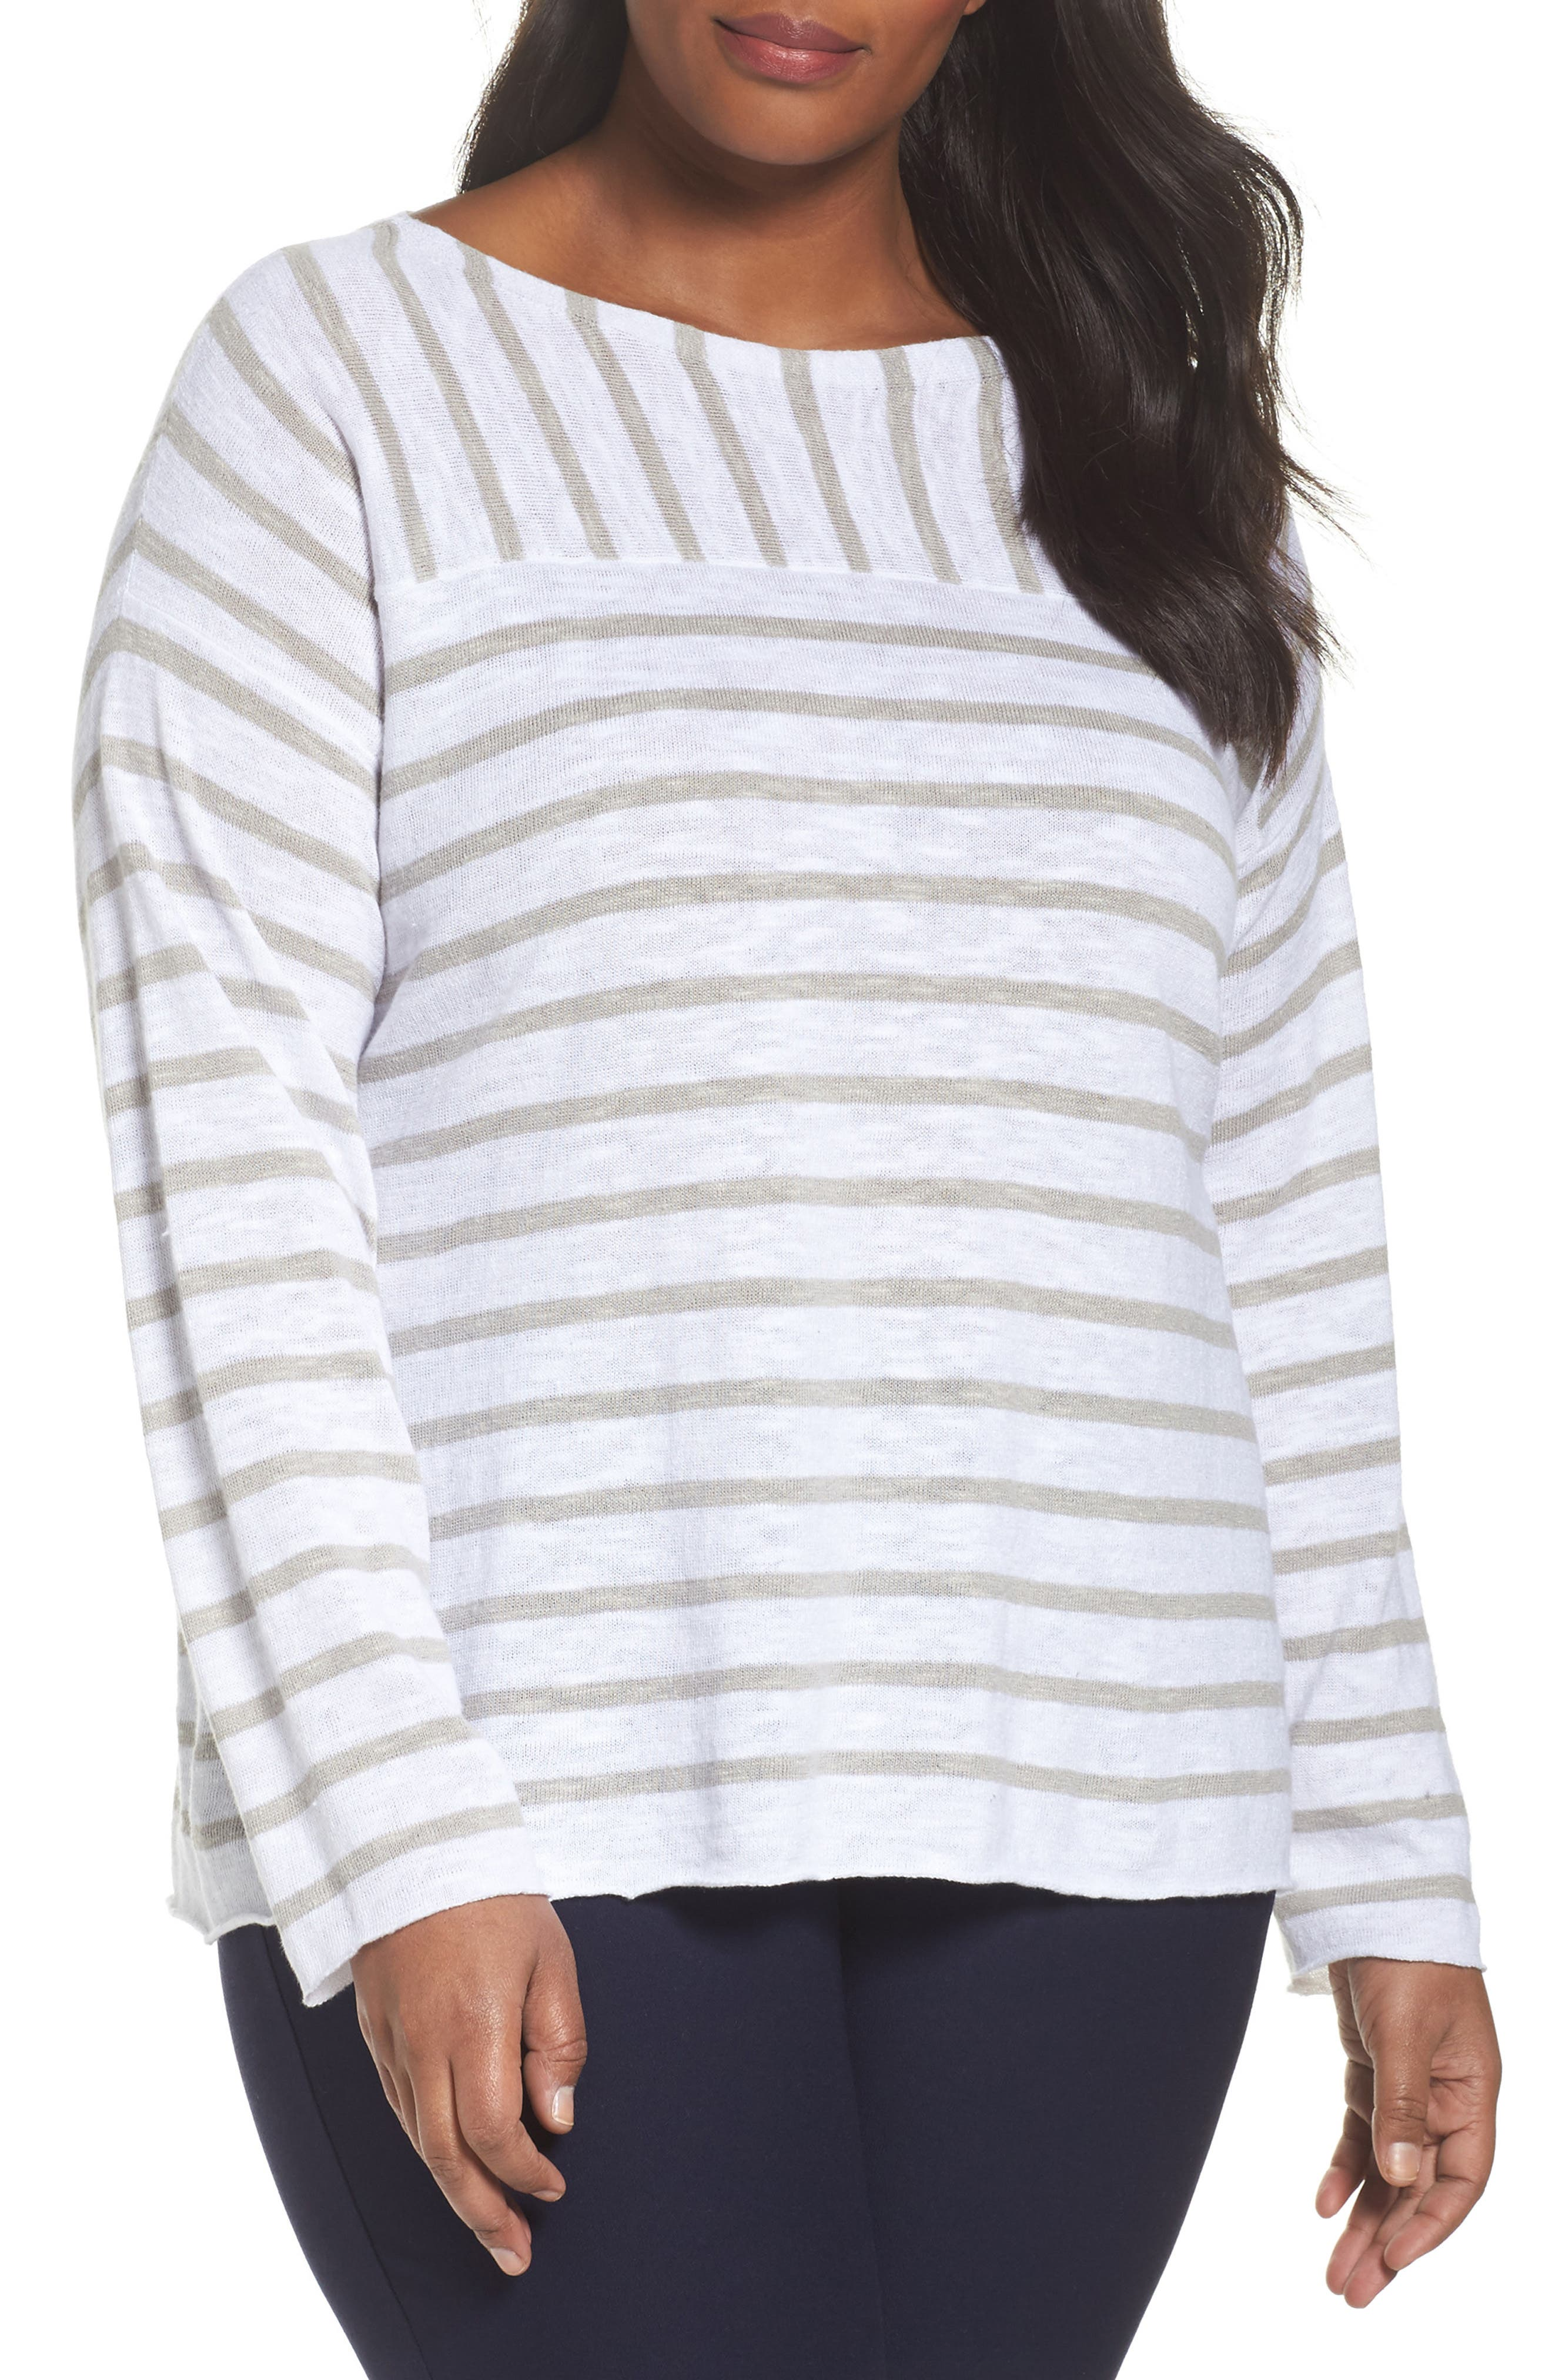 Alternate Image 1 Selected - Eileen Fisher Stripe Organic Linen & Cotton Top (Plus Size)